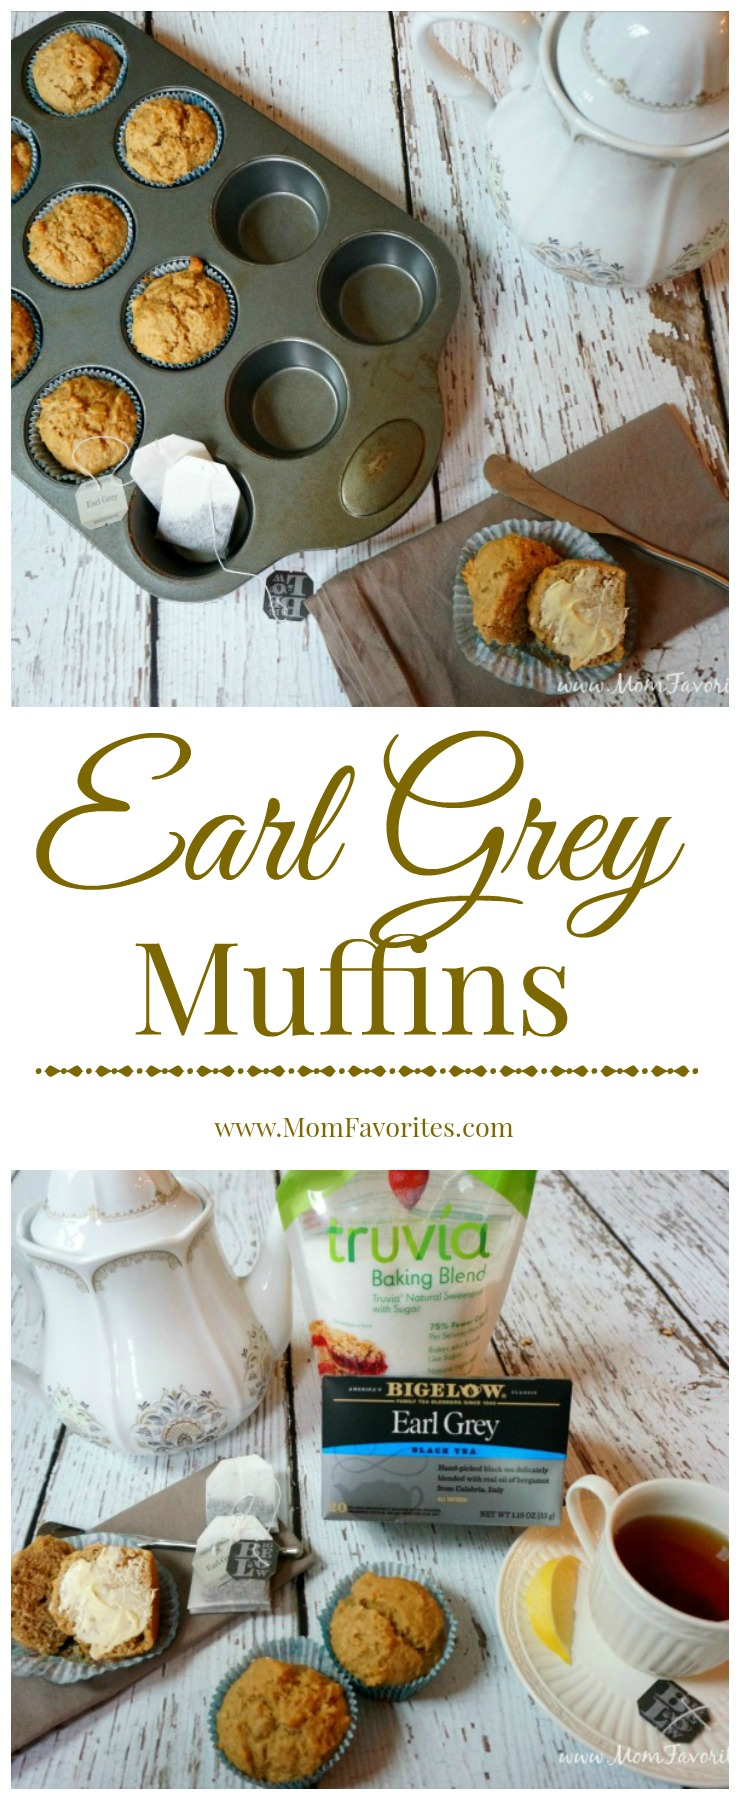 Hitting your afternoon slump? Try this recipe for Earl Grey Muffins. Made even lighter with Truvia Baking Blend!